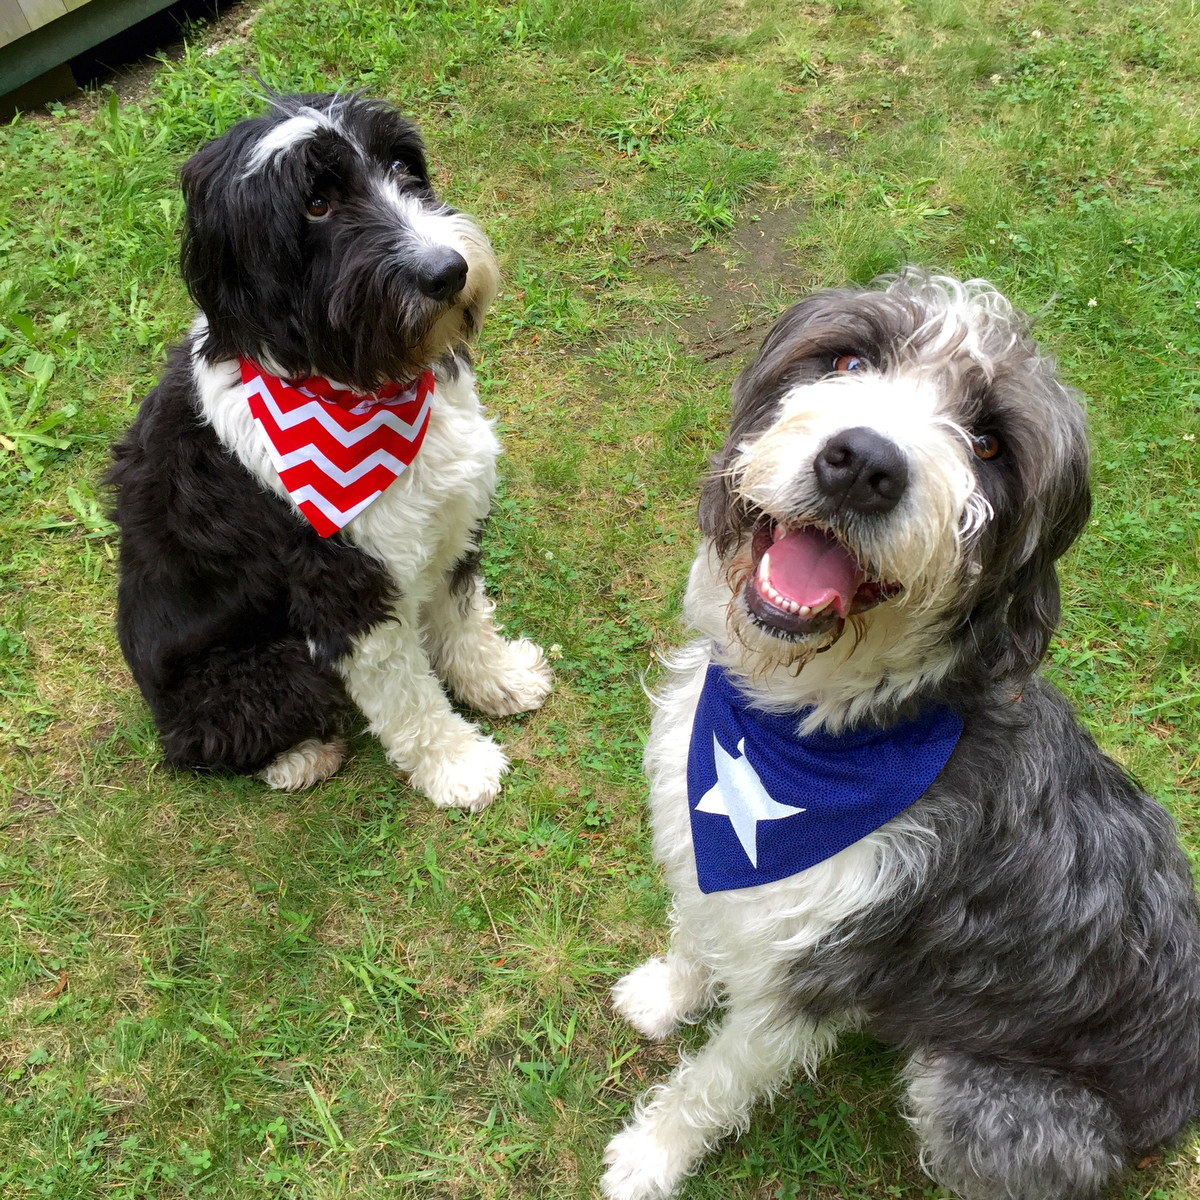 I sewed bandanas for the dogs! Harlow, on the right, is mine, and Bootsie who tends to be camera shy, belongs to my parents.